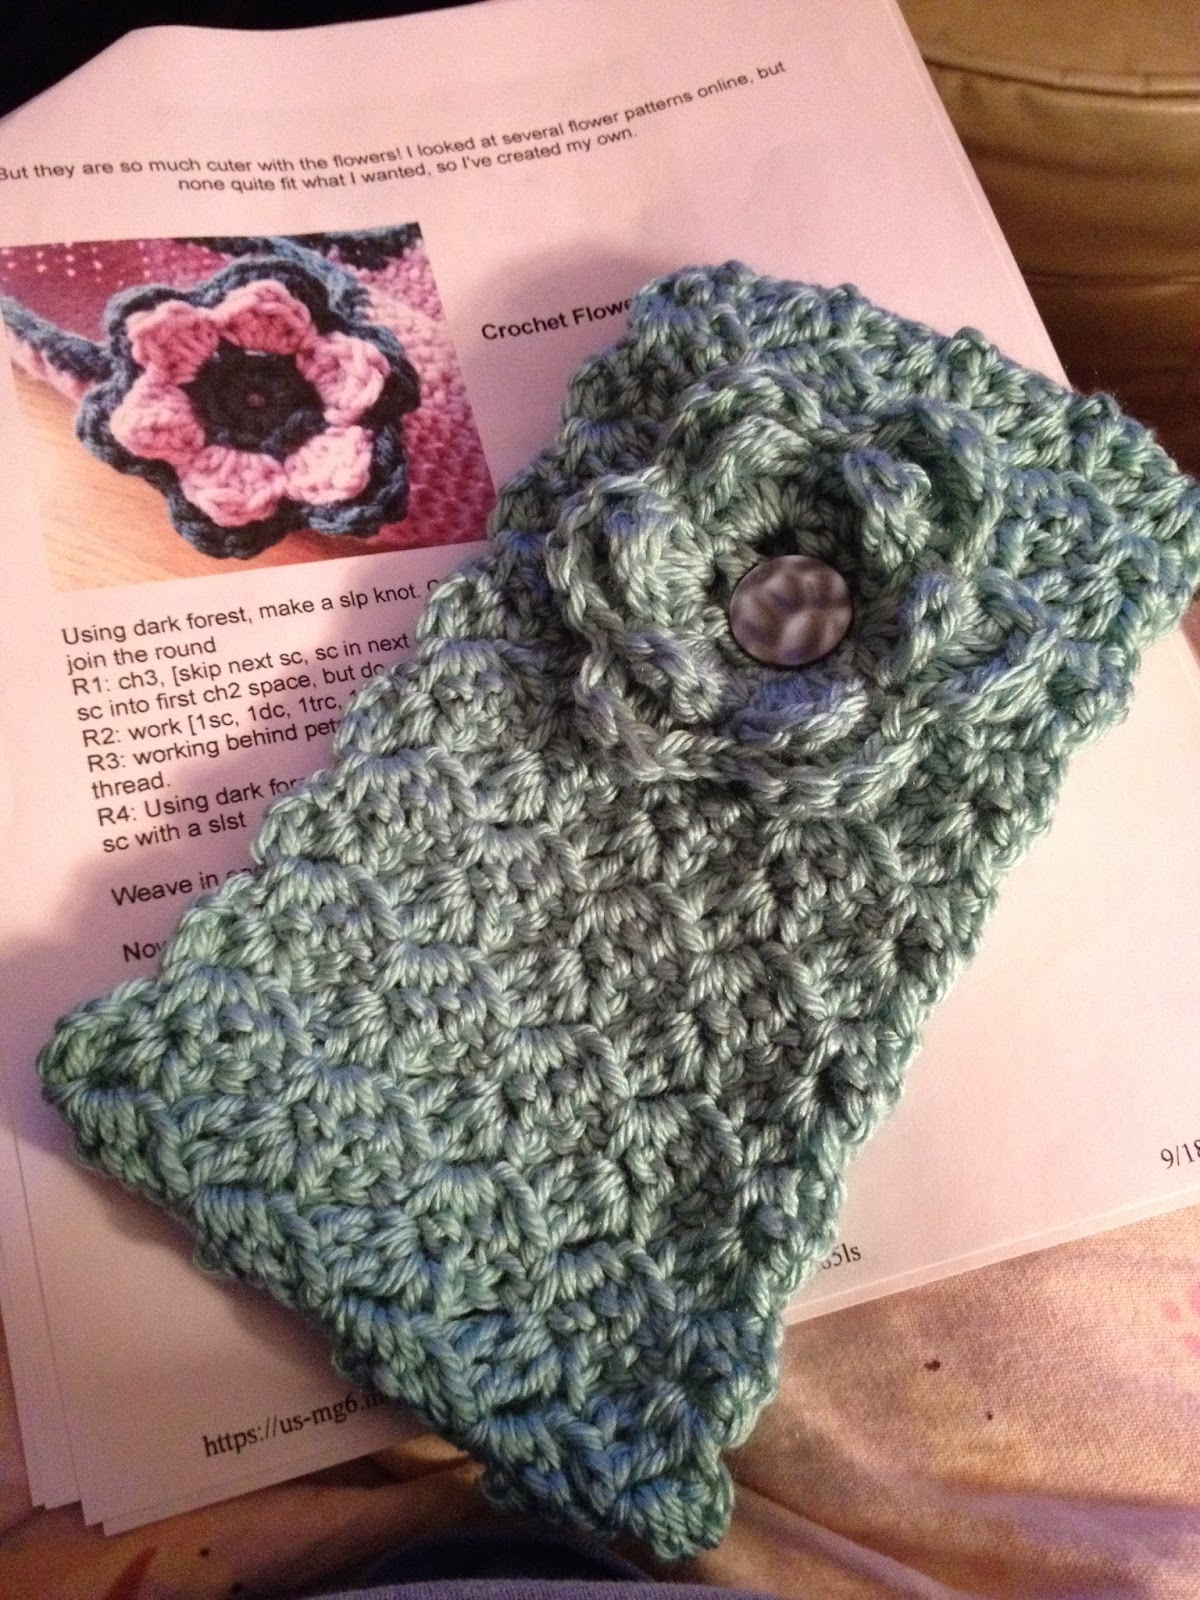 Crochet Patterns Head Warmers : So far I have made several head warmers in different colors and yarns.